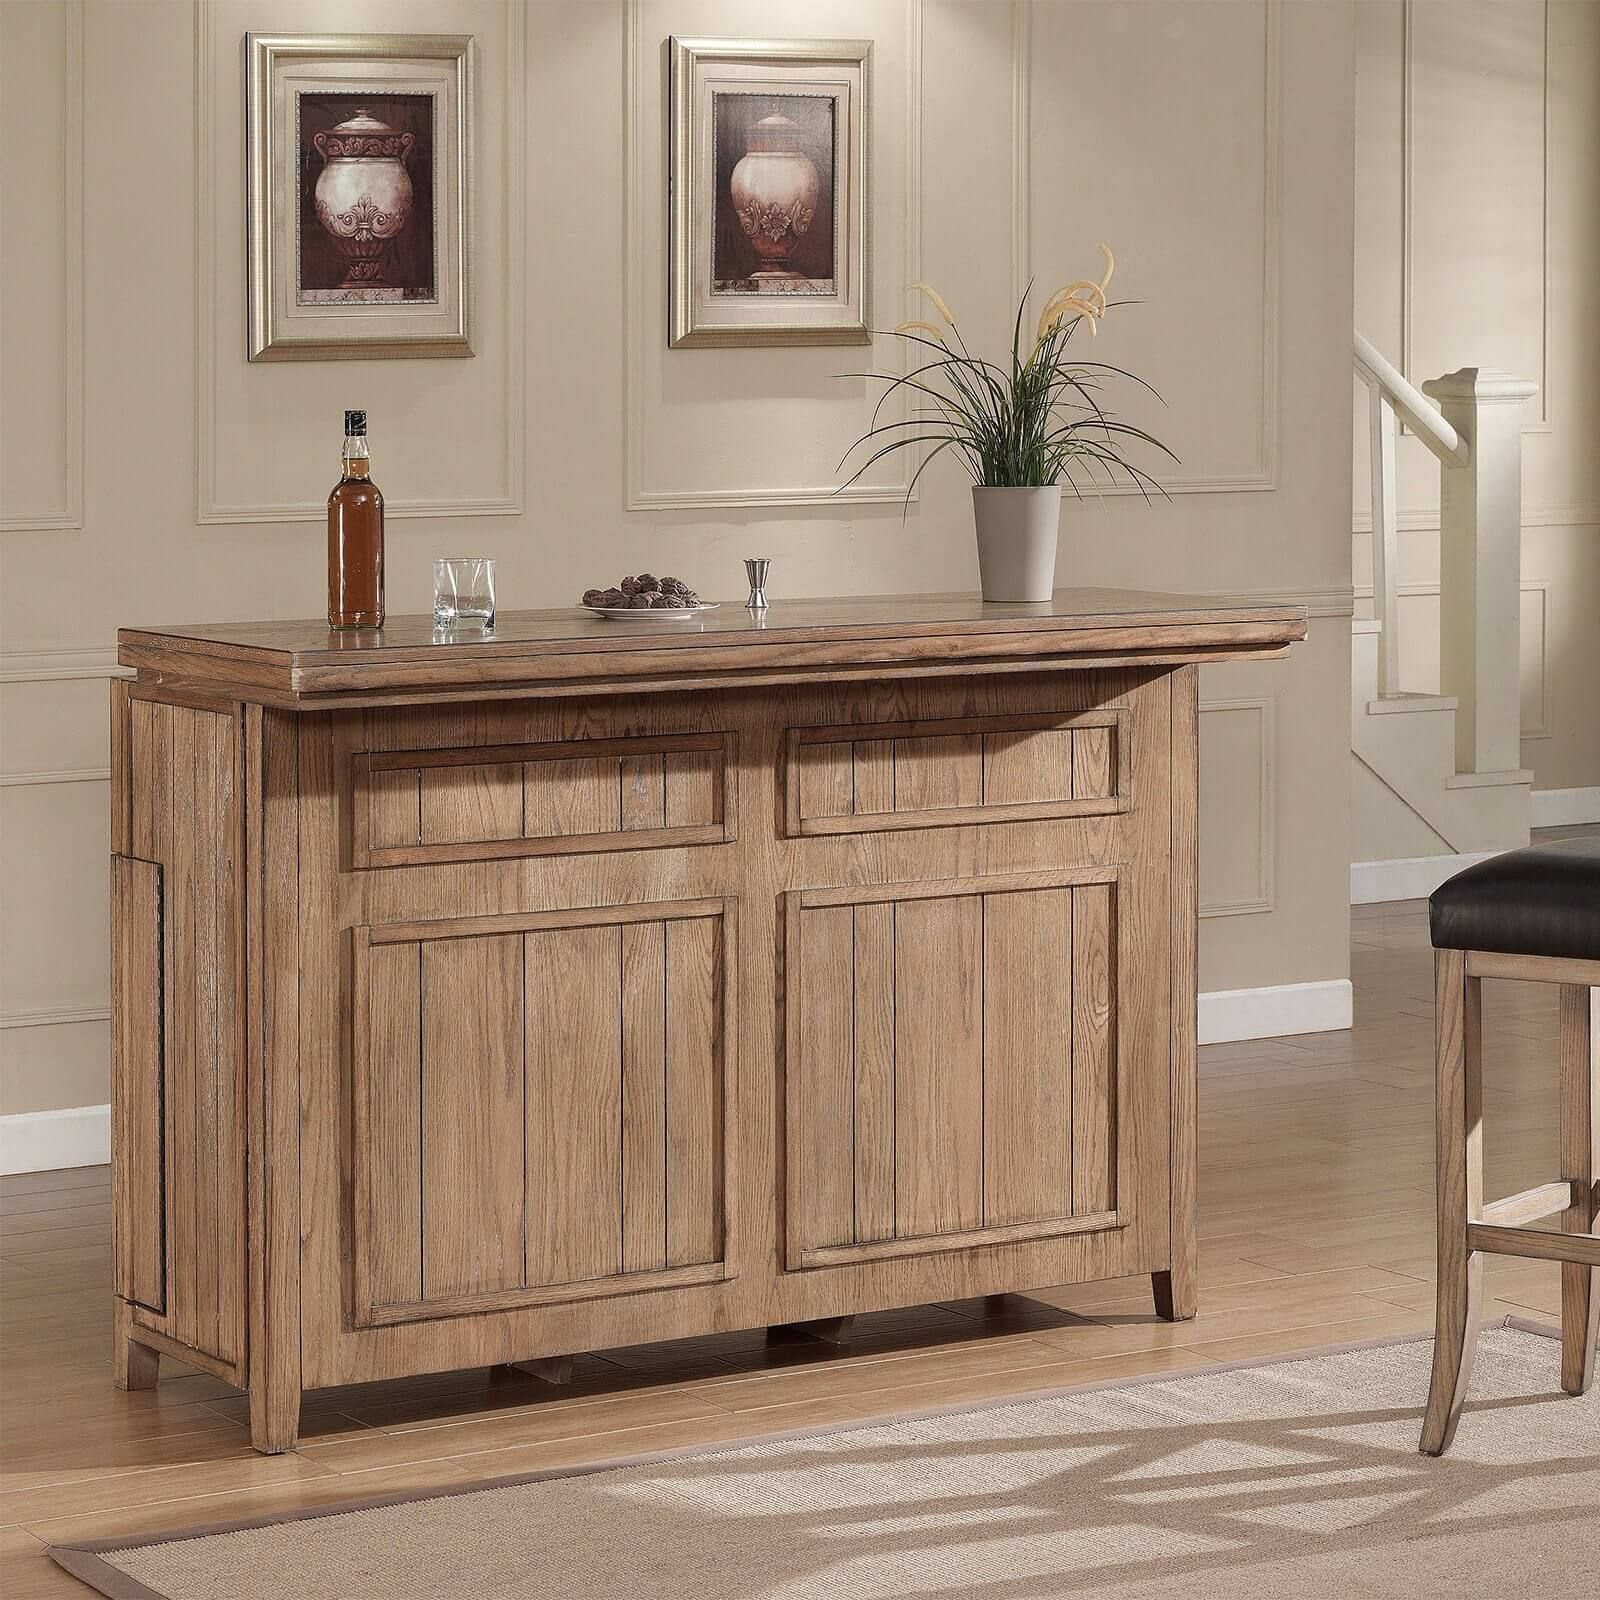 Beau 30 Top Home Bar Cabinets, Sets U0026 Wine Bars (ELEGANT U0026 FUN)